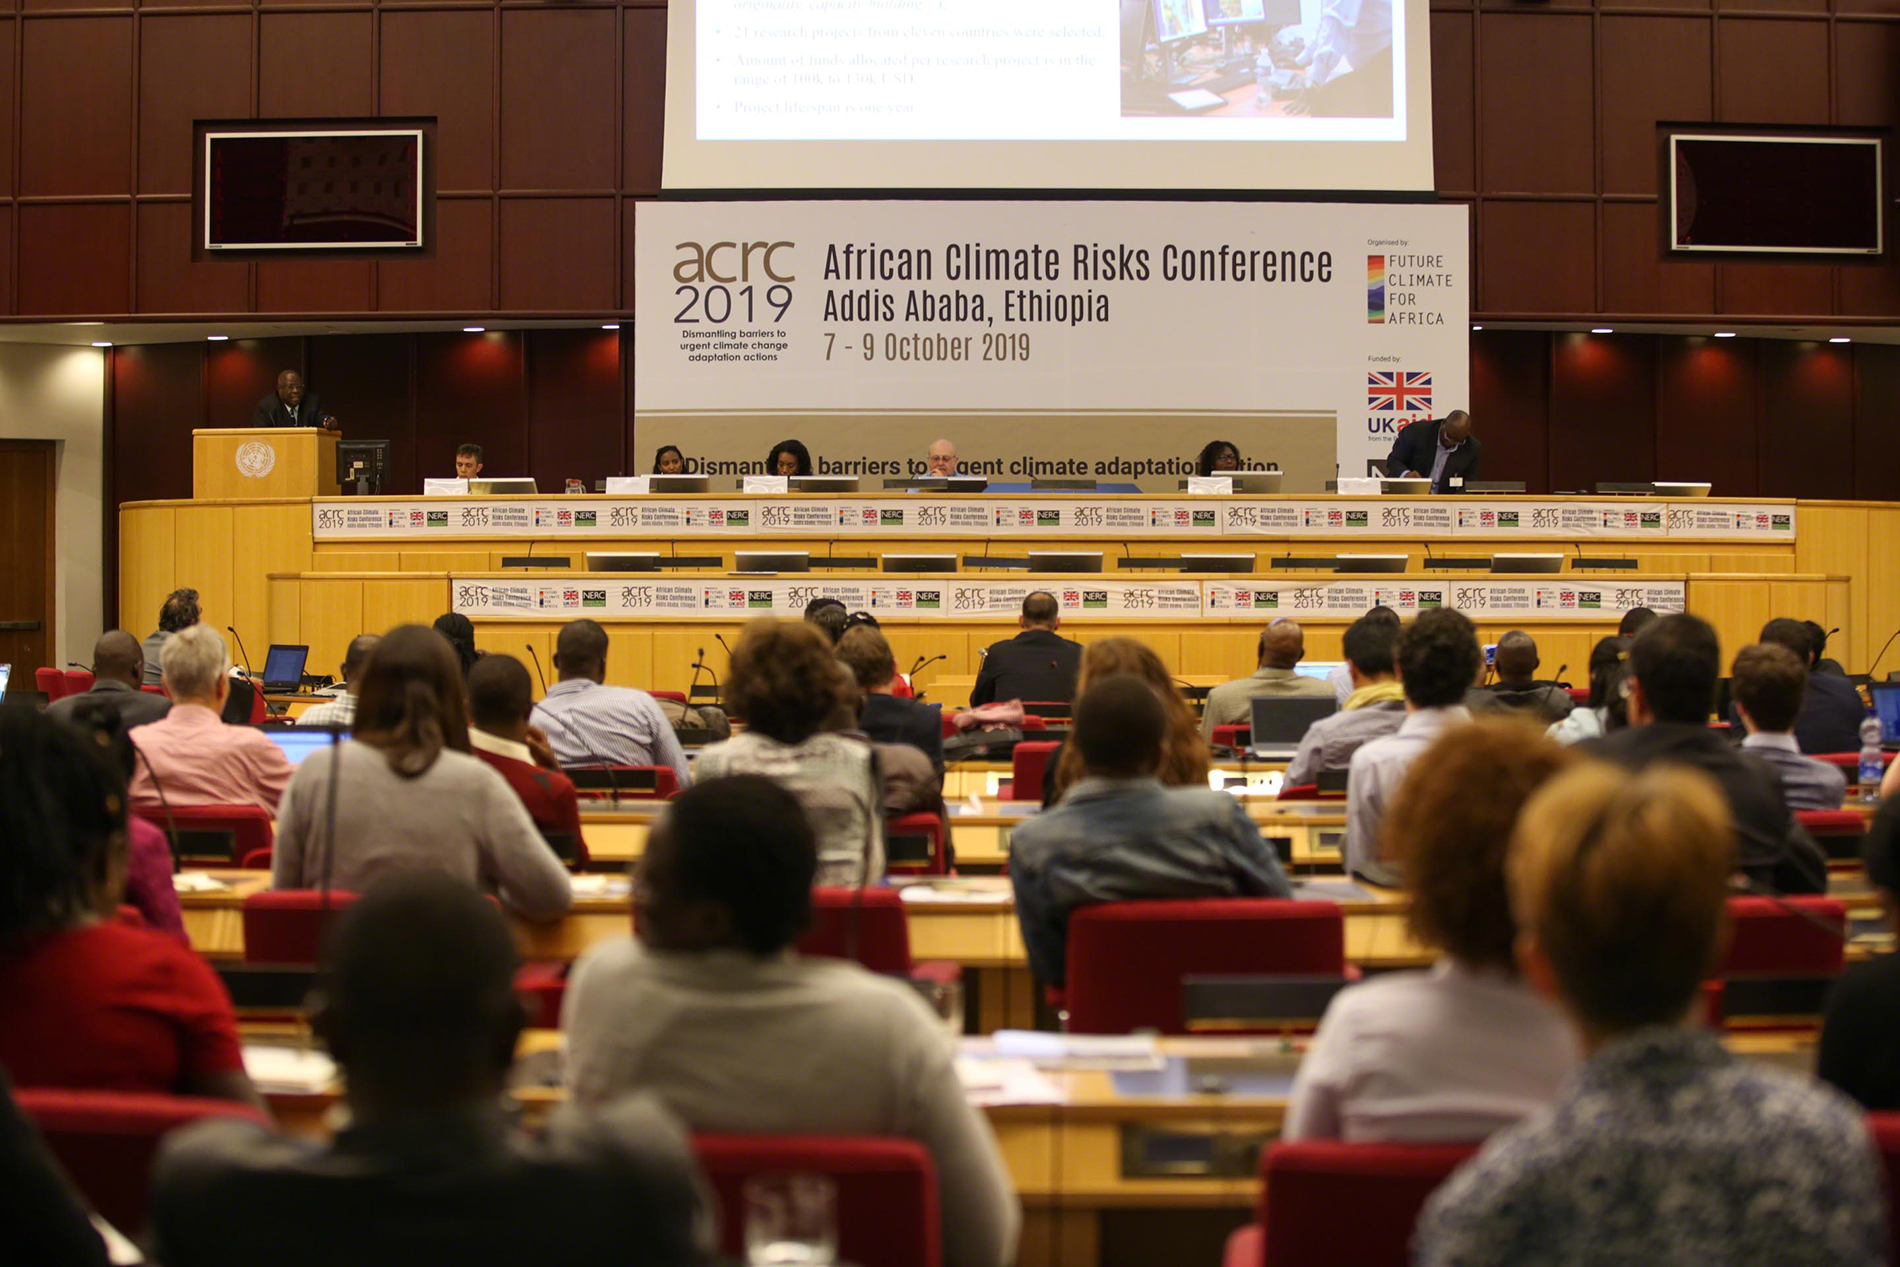 African Climate Risks Conferences in Ethiopia, October 2019. Photo by IISD/ENB | Kiara Worth